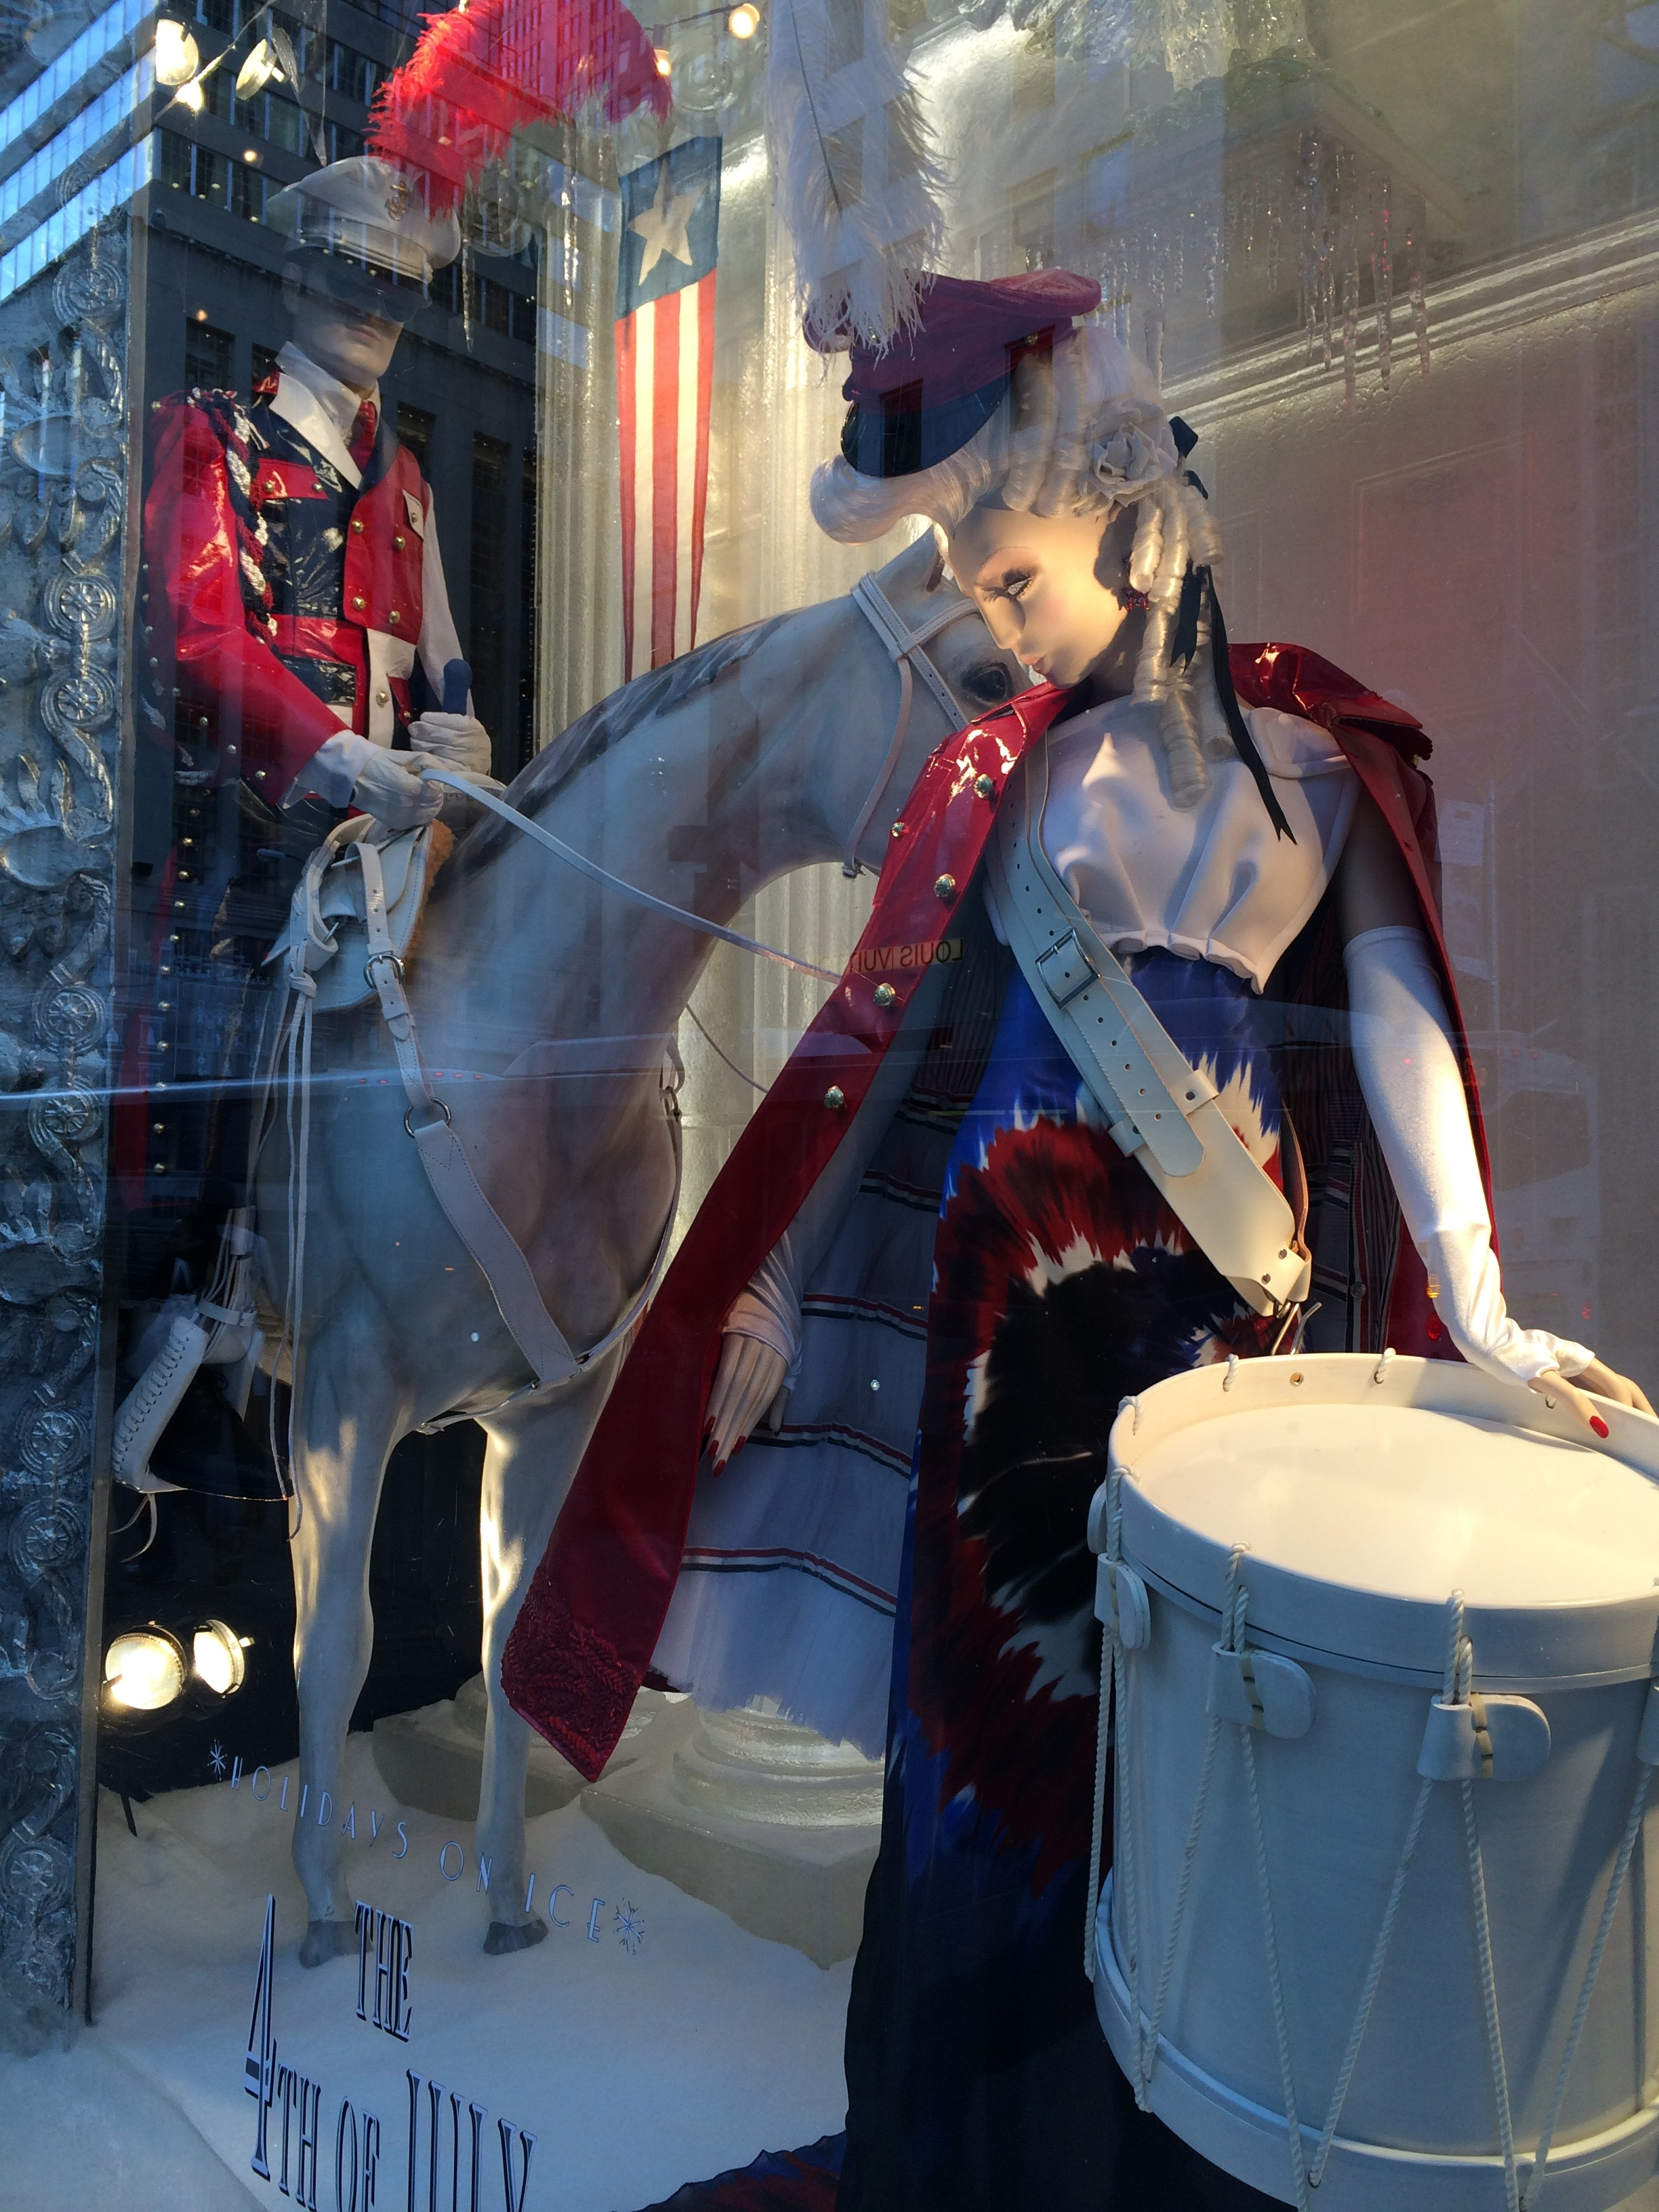 4th of July Window, Bergdorf Goodman